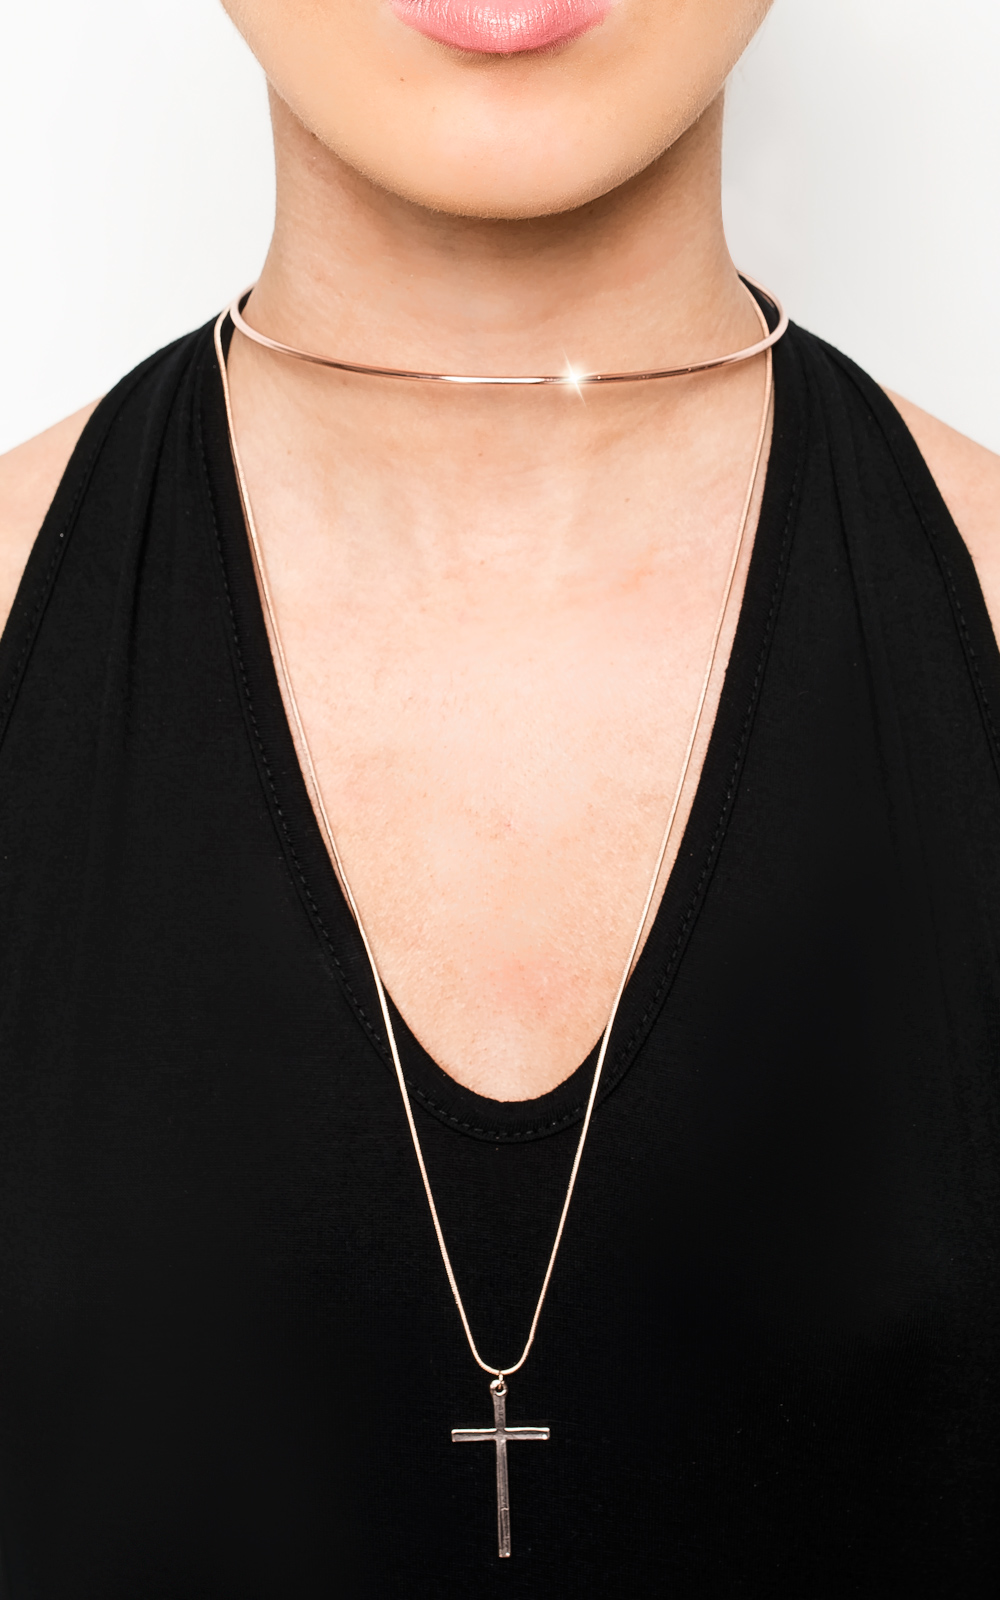 IKRUSH Womens Lola Gold Cross Choker This choker is a must-have if you want to slay on a night out ladies! This beaut has a cross feature which is to die for! The perfect accessory for any night out!